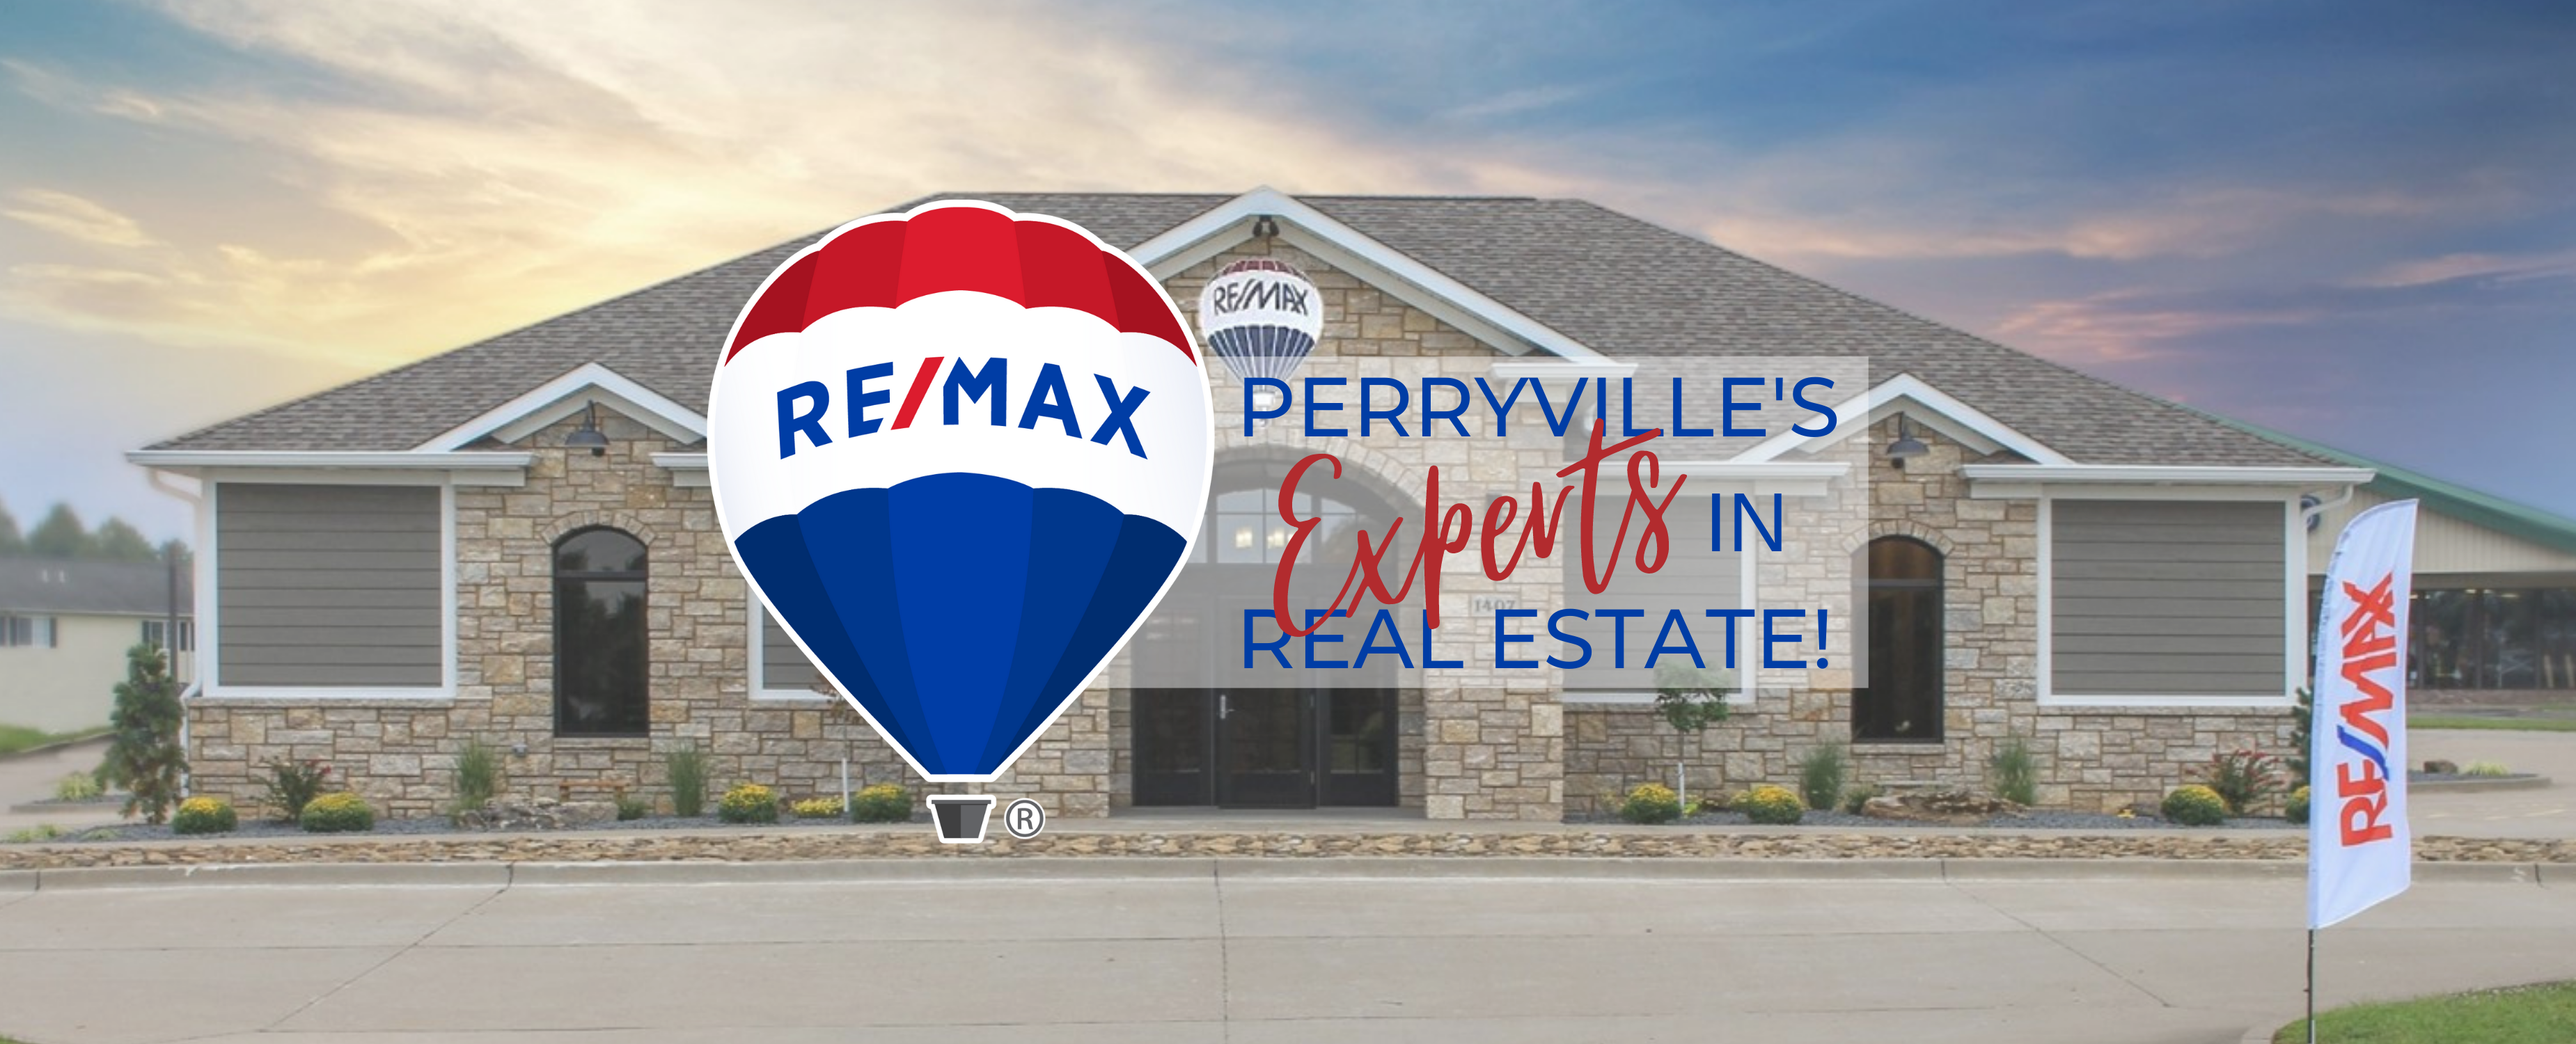 Real Estate Company Perryville, MO